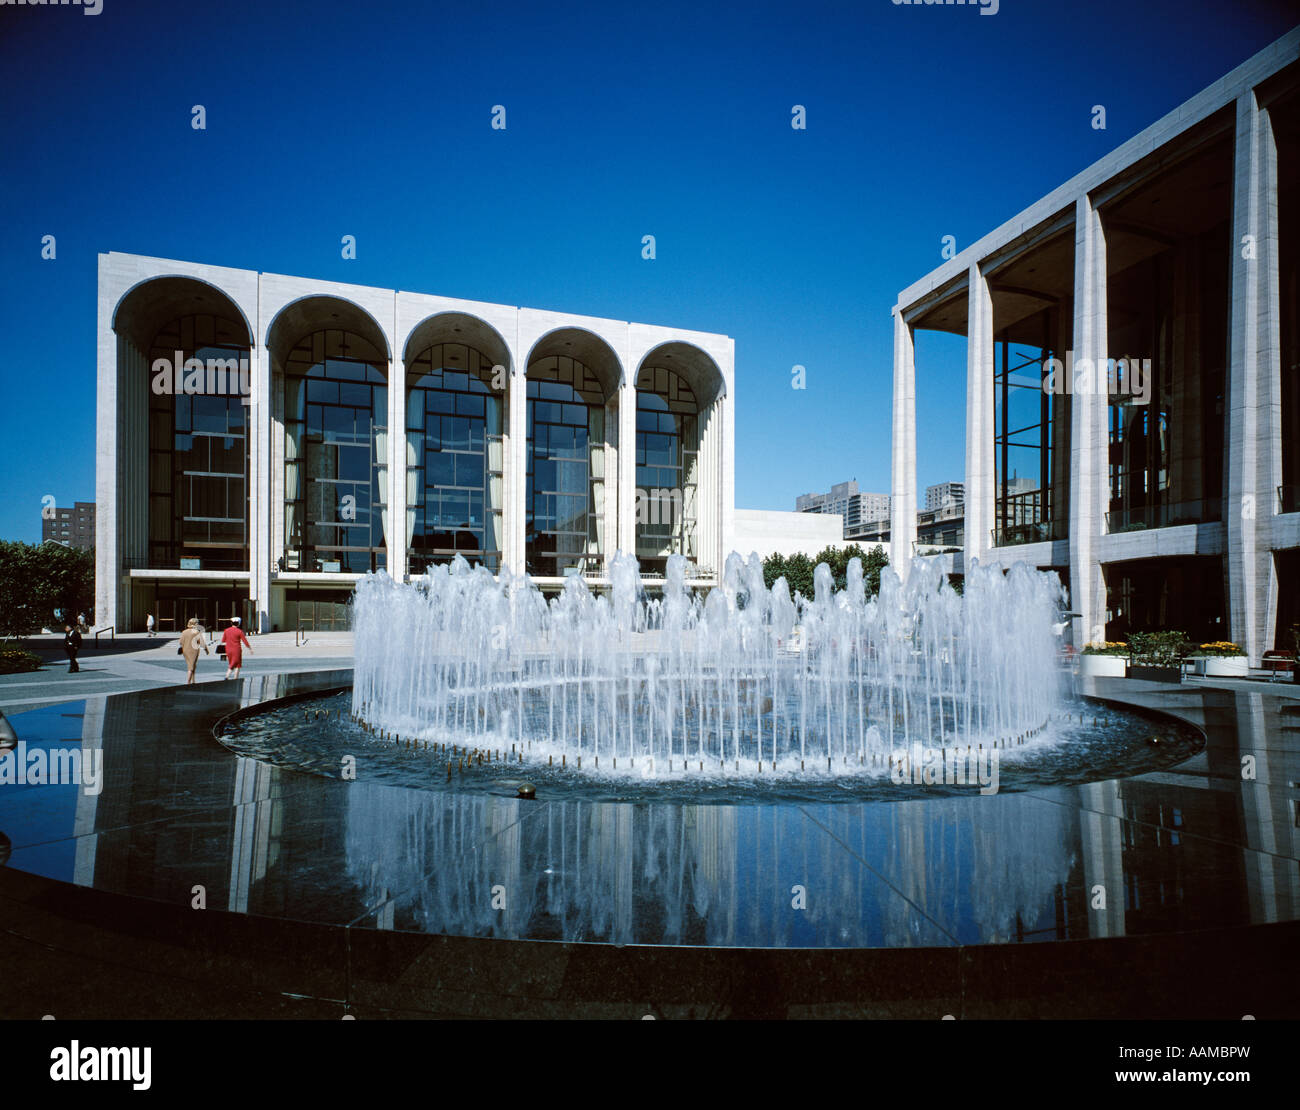 1970 LINCOLN CENTER NEW YORK CITY AVERY FISHER HALL NY State Theatre Photo Stock